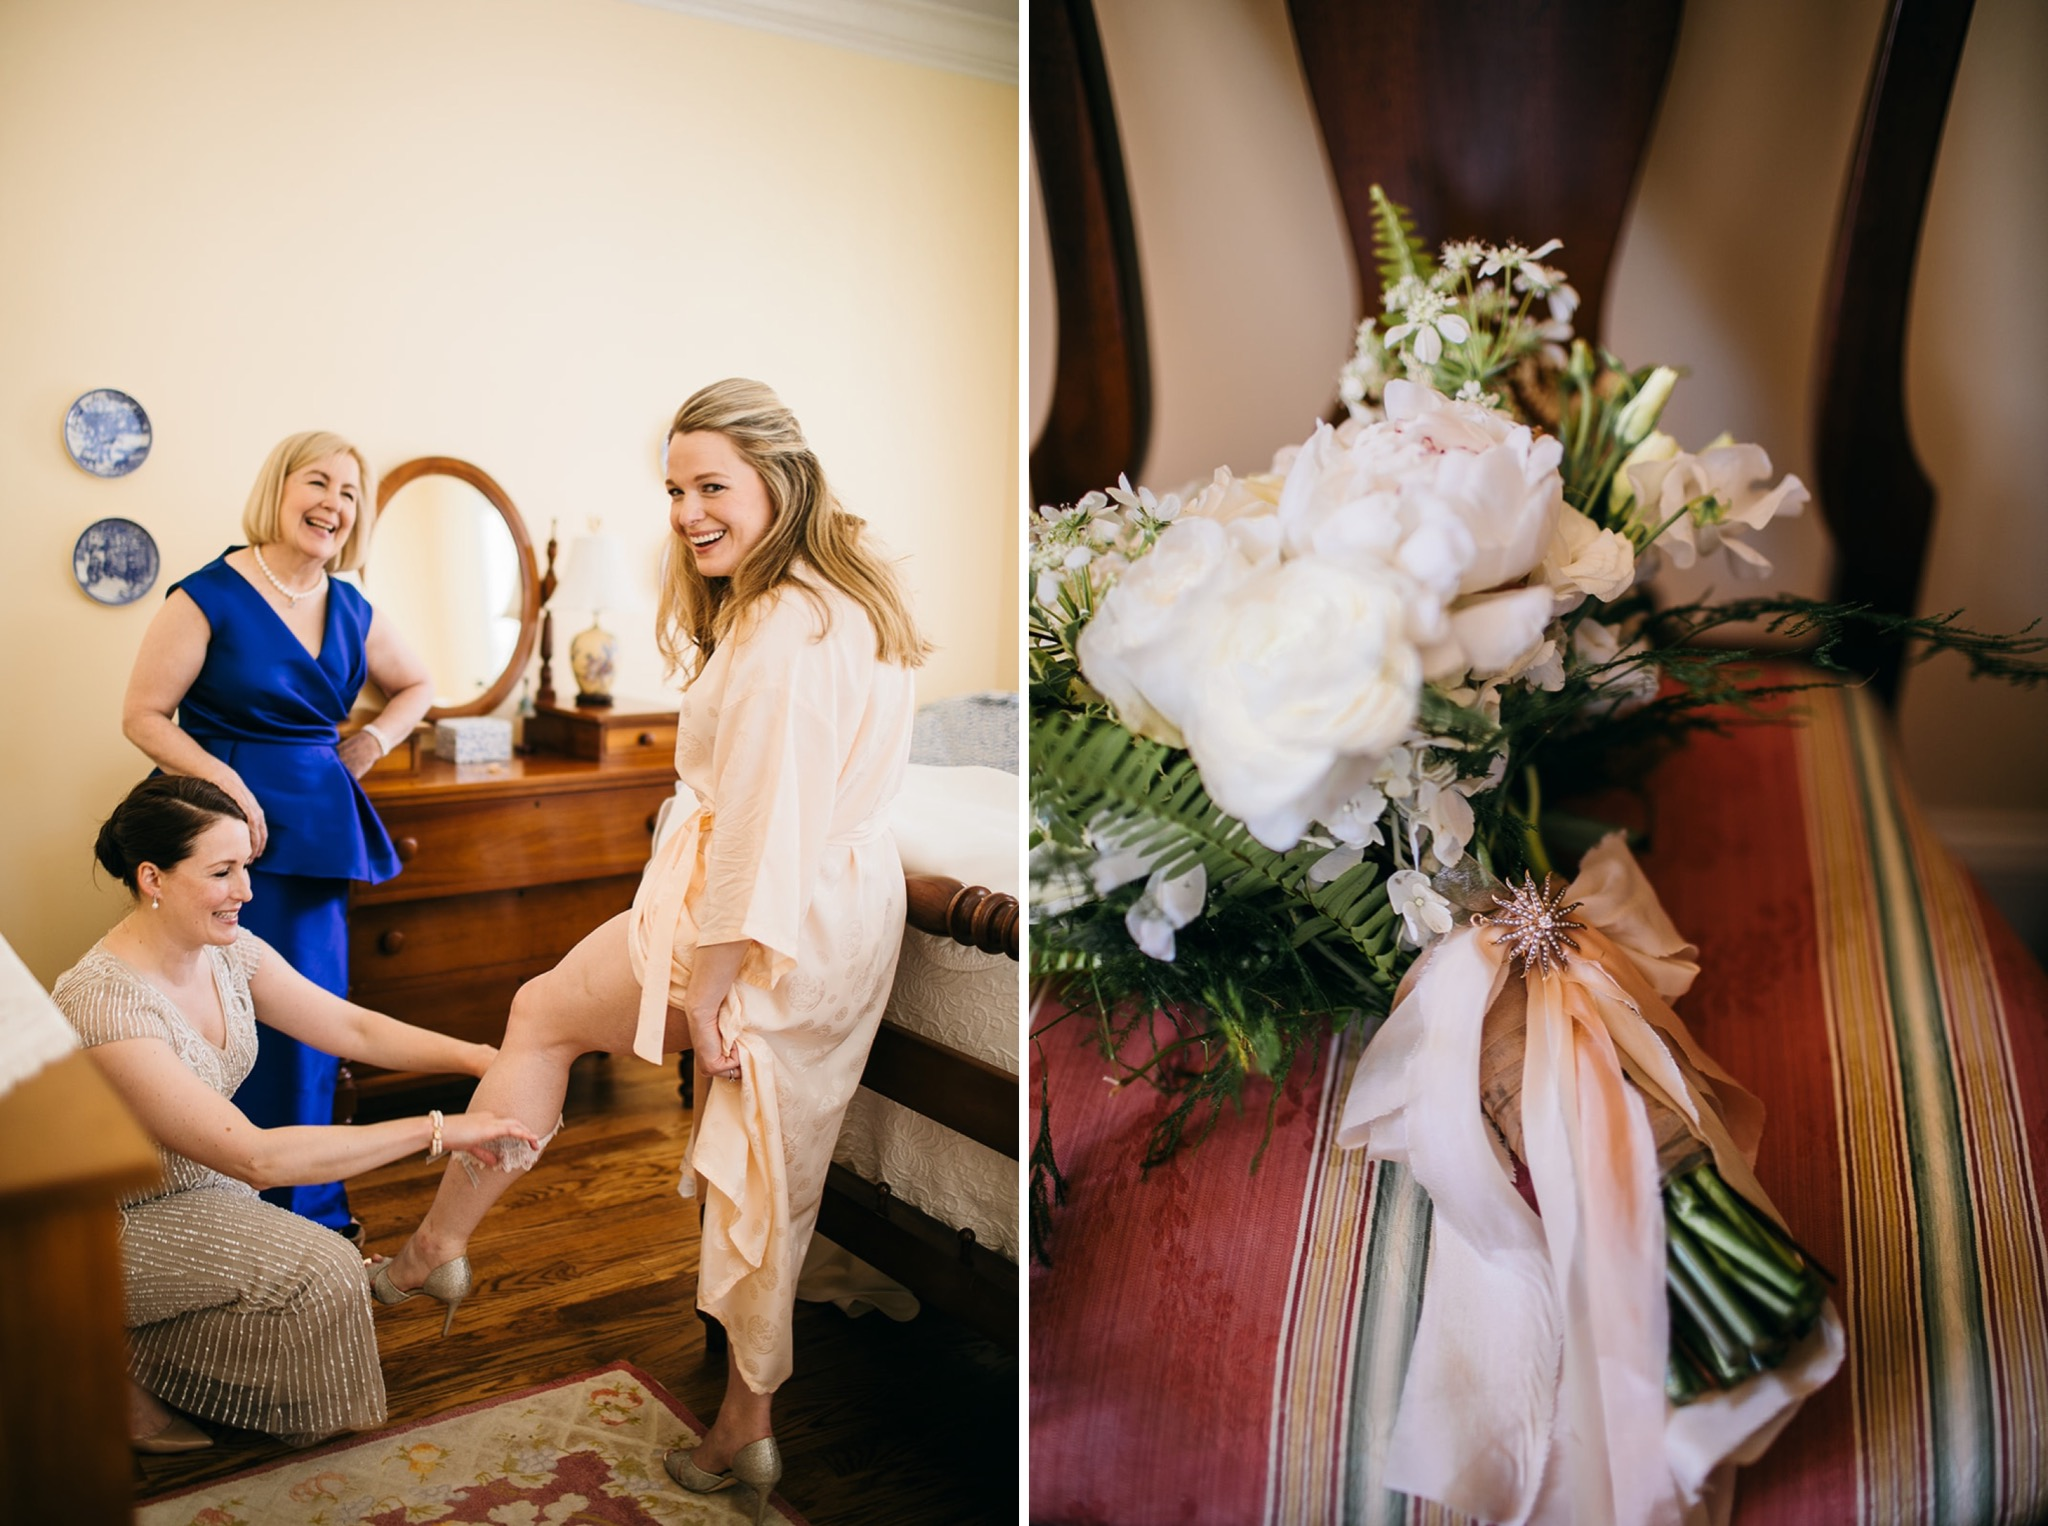 matron of honor helps put garter around bride's calf while mother of bride watches and laughs